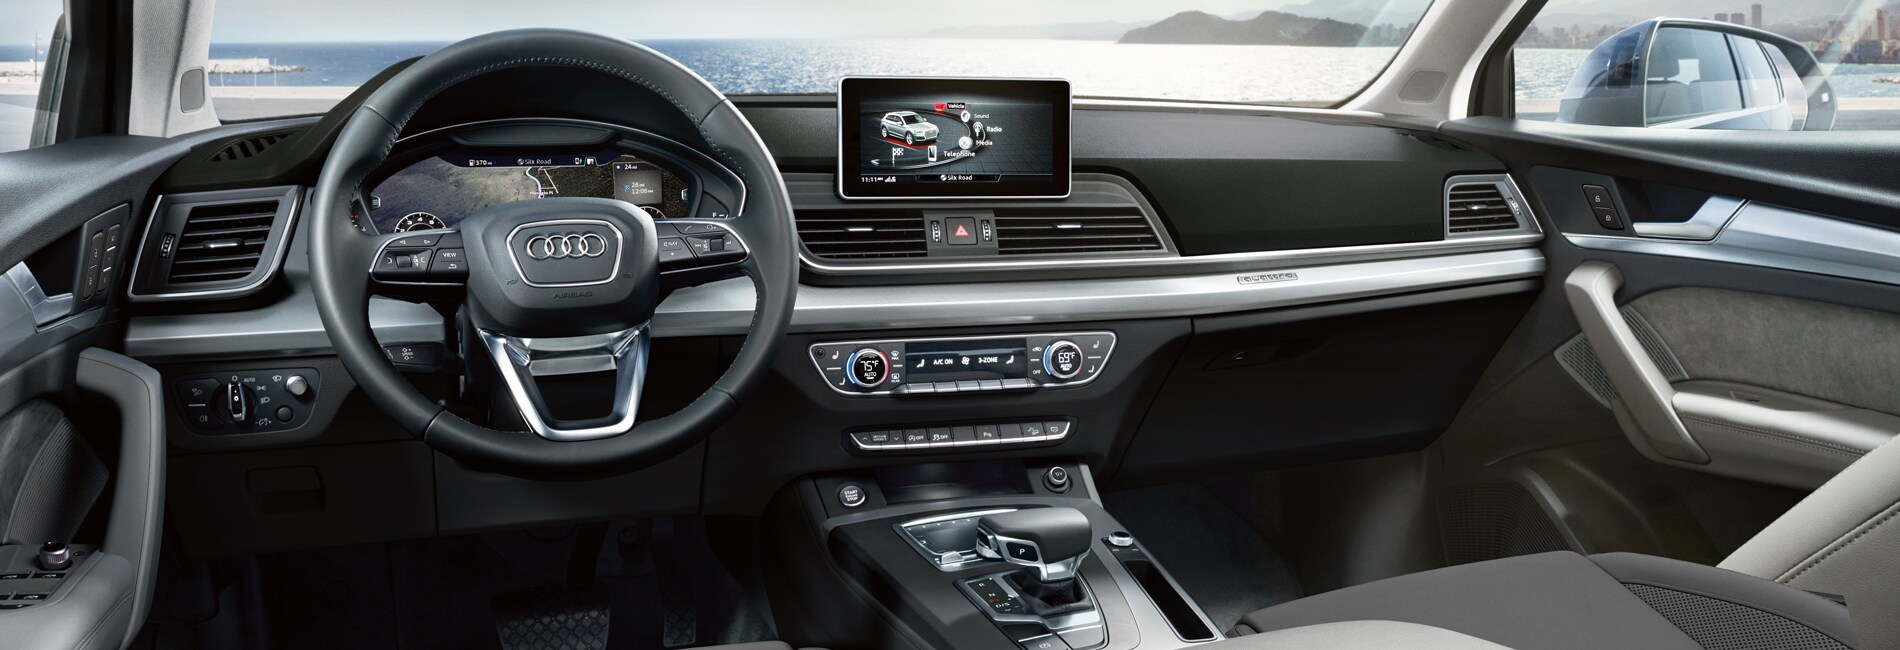 Audi Q5 Interior Features